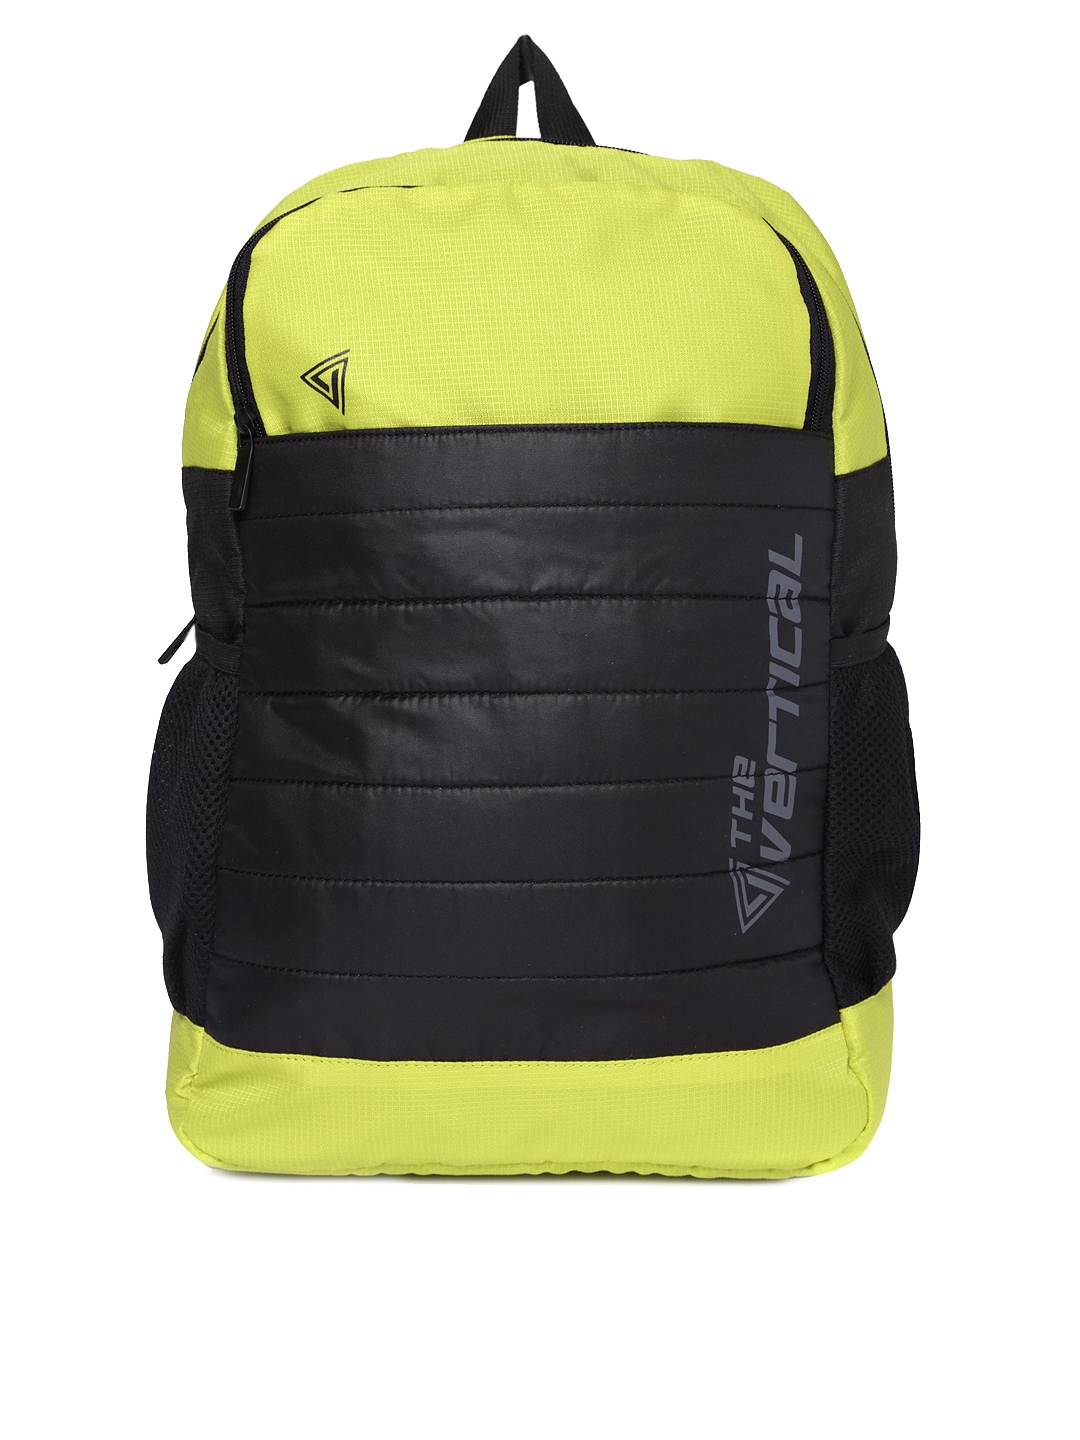 THe VerTicaL Unisex Lime Green   Black Laptop Backpack